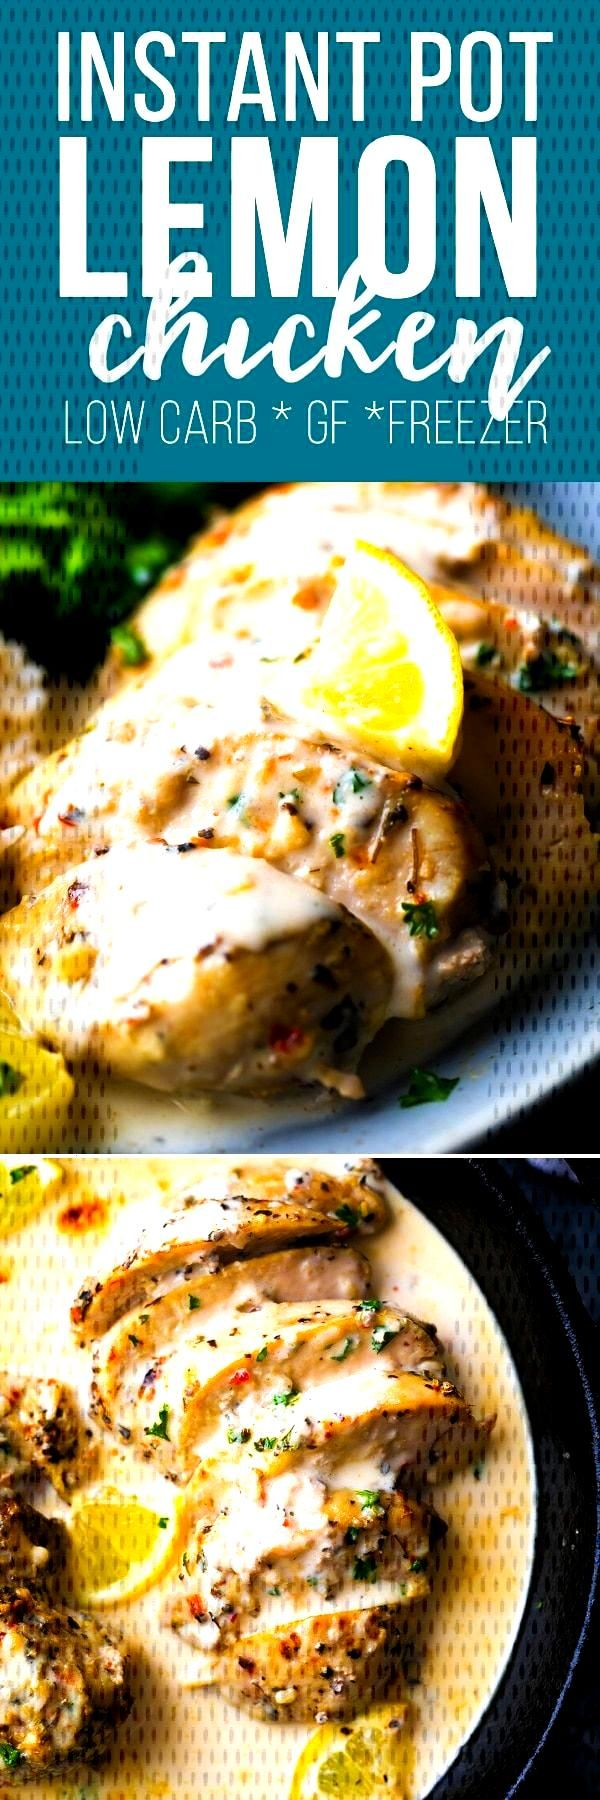 Instant Pot creamy lemon chicken breasts get dinner on the table in under 30 minutes! Juicy chicken